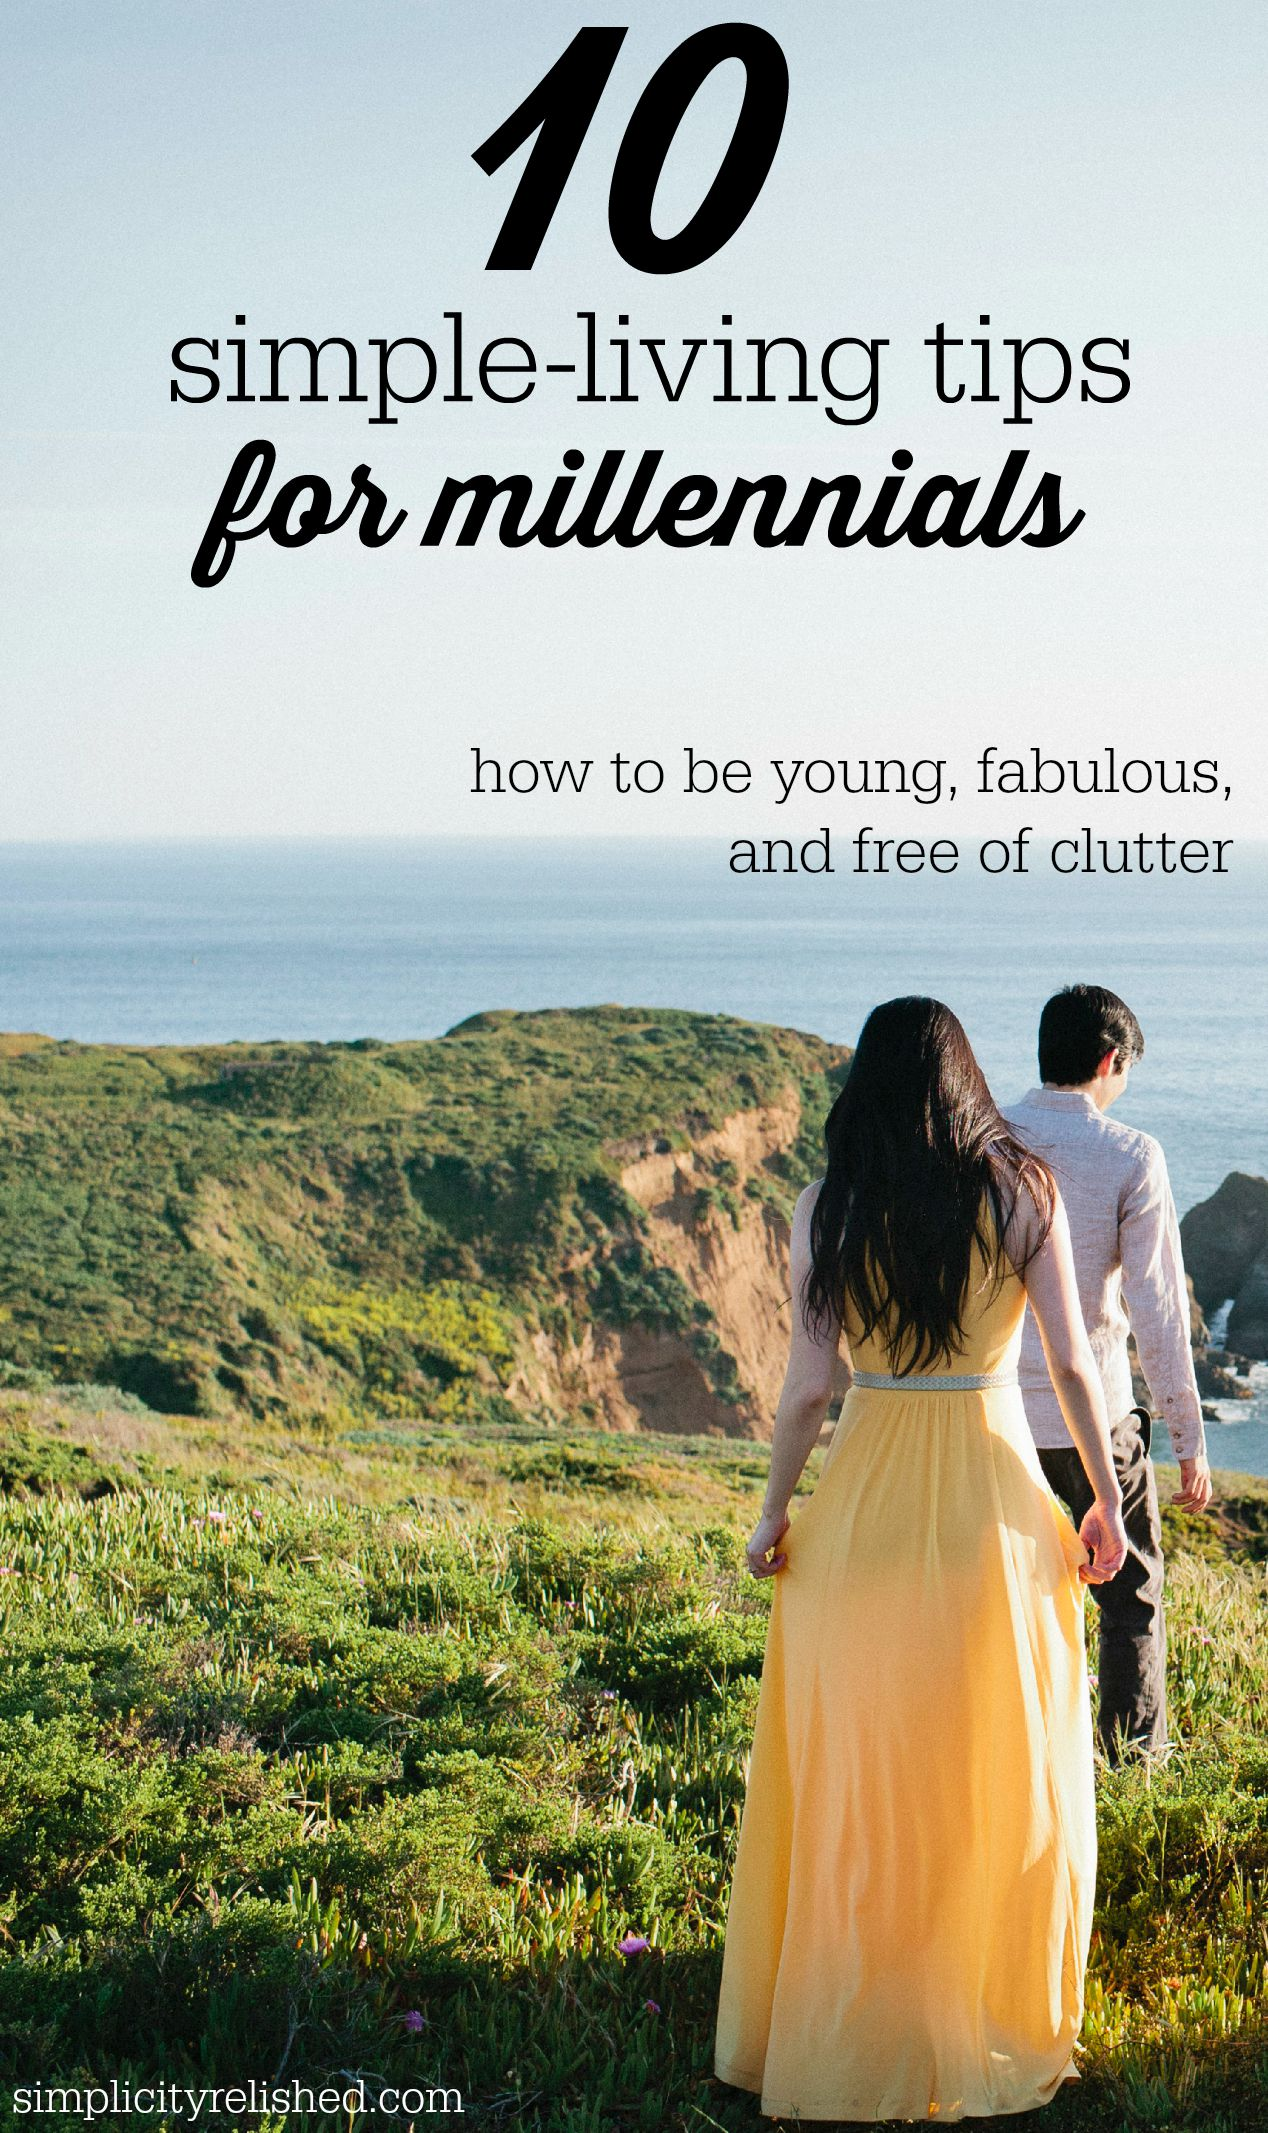 10 simple living tips for millennials simplicity relished for The simple guide to a minimalist life